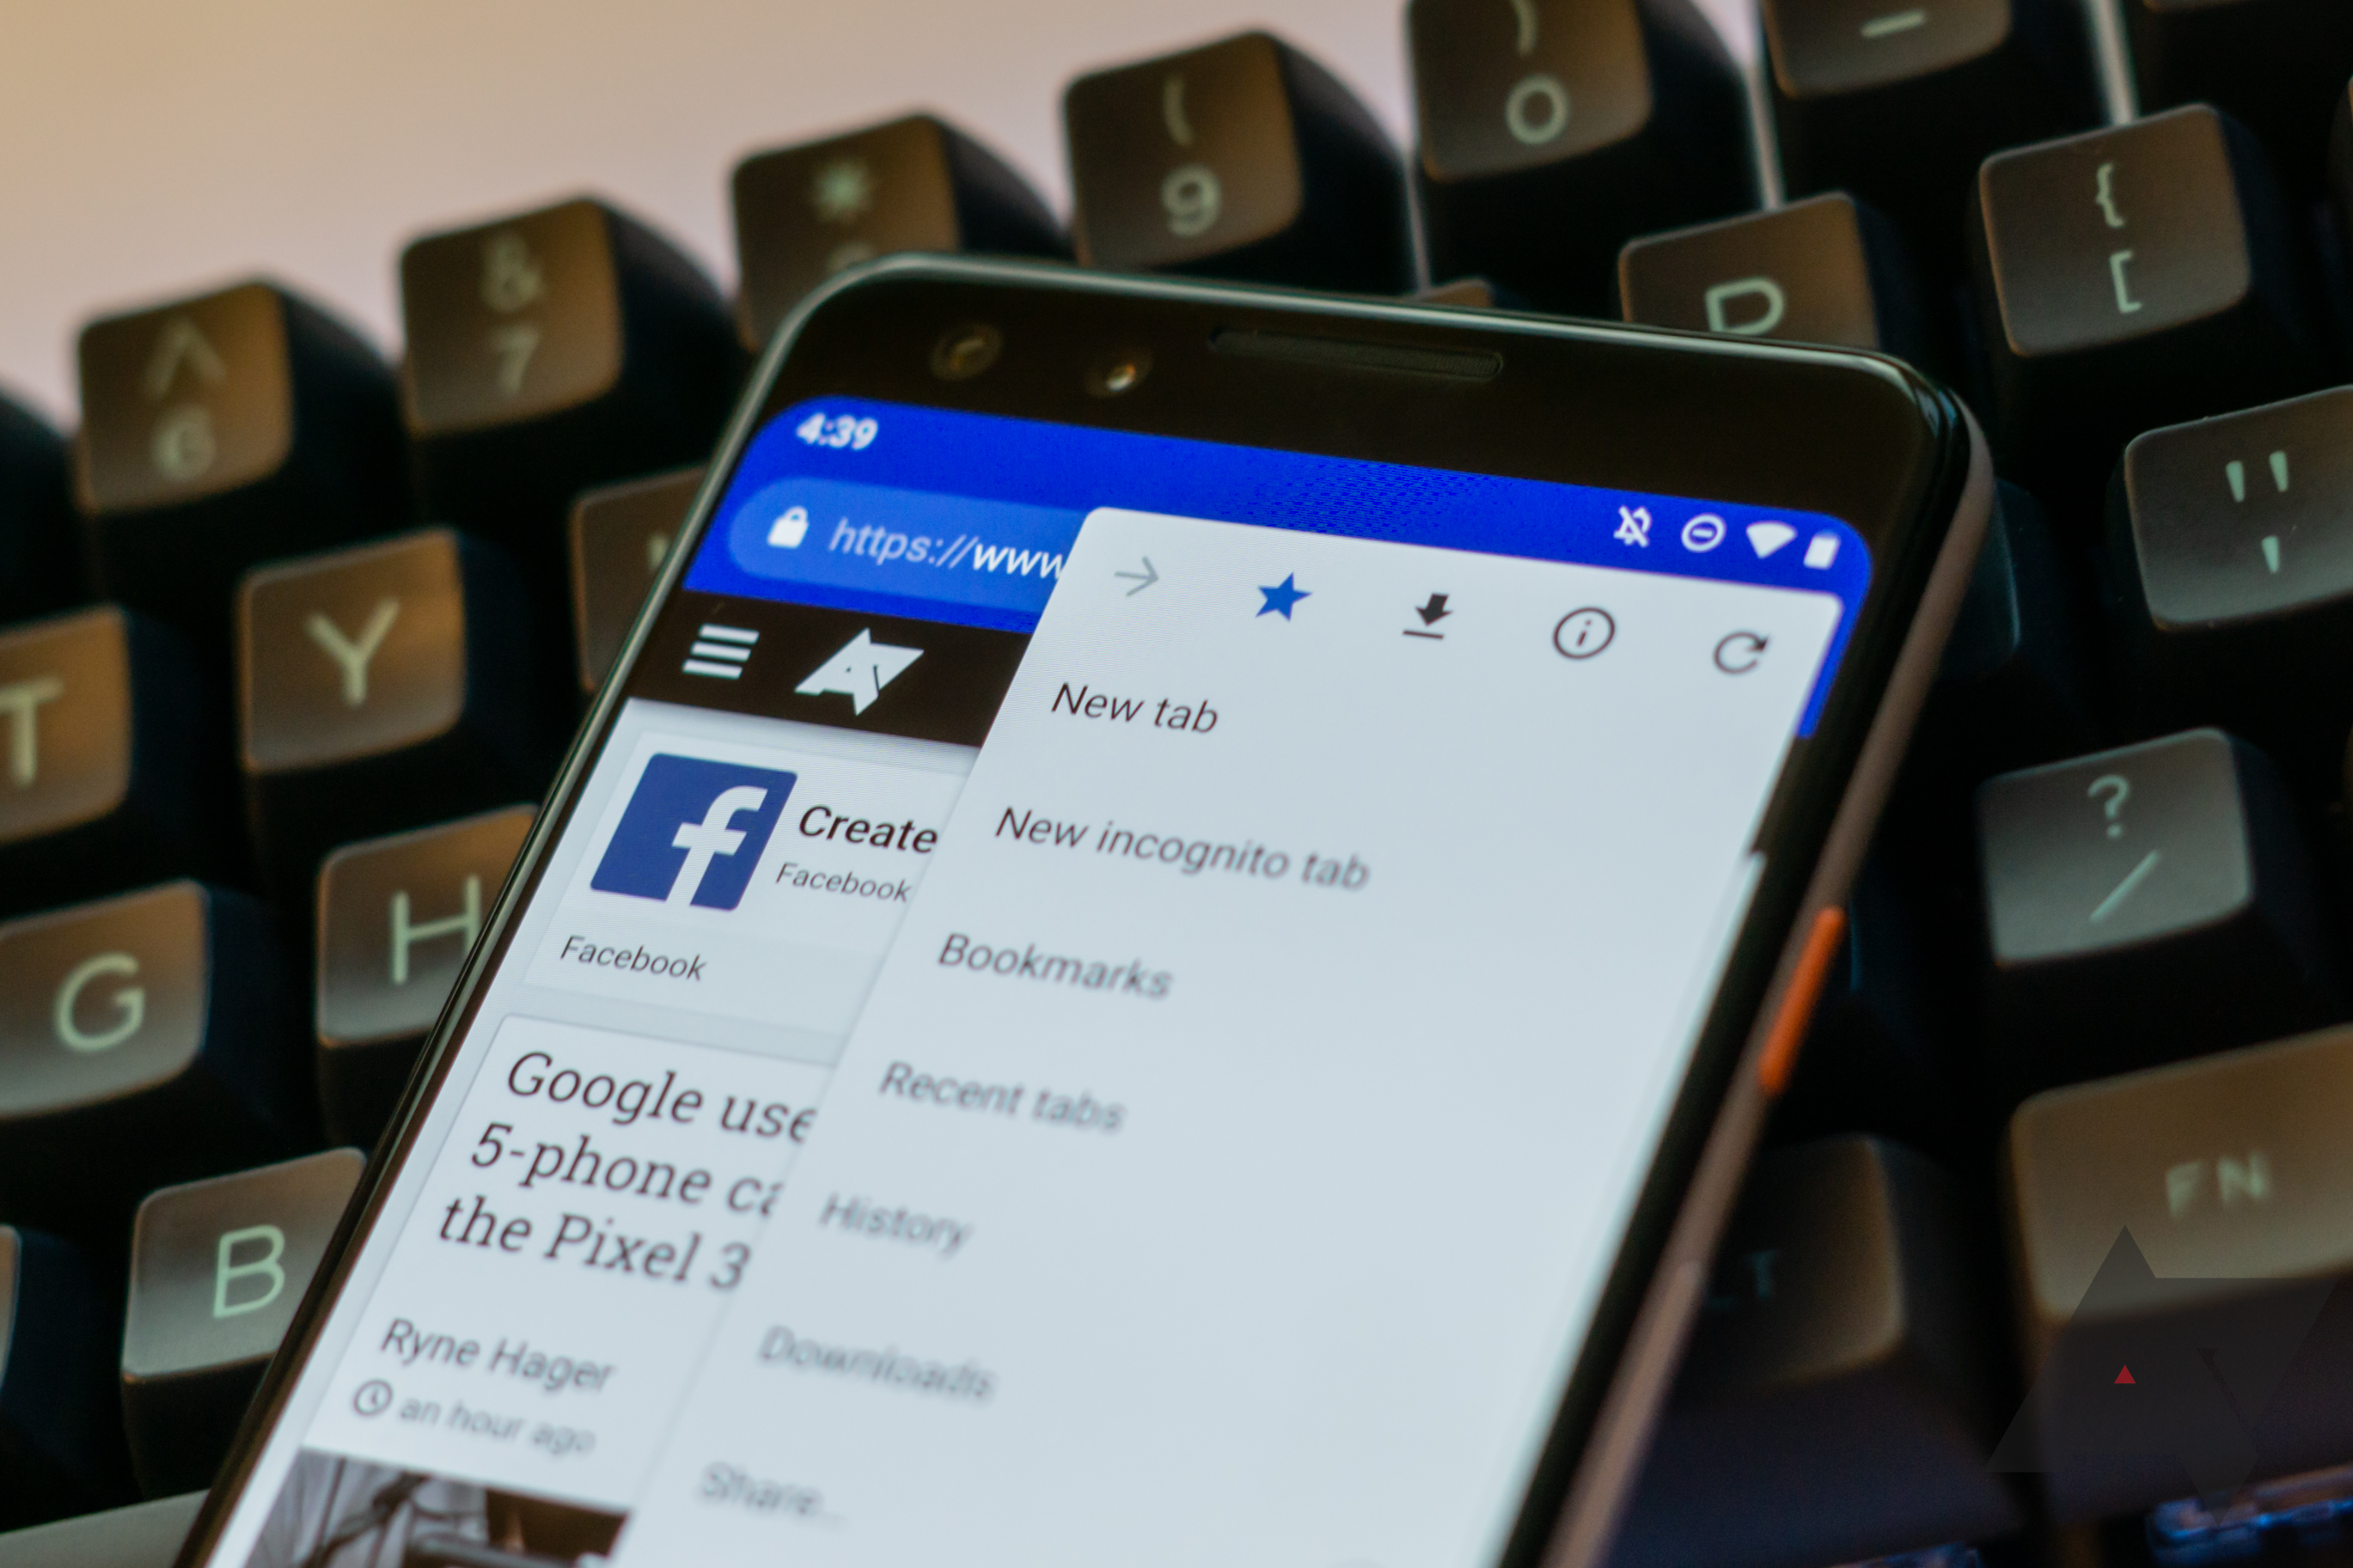 Gestures for page forward/back may be coming to Chrome for Android